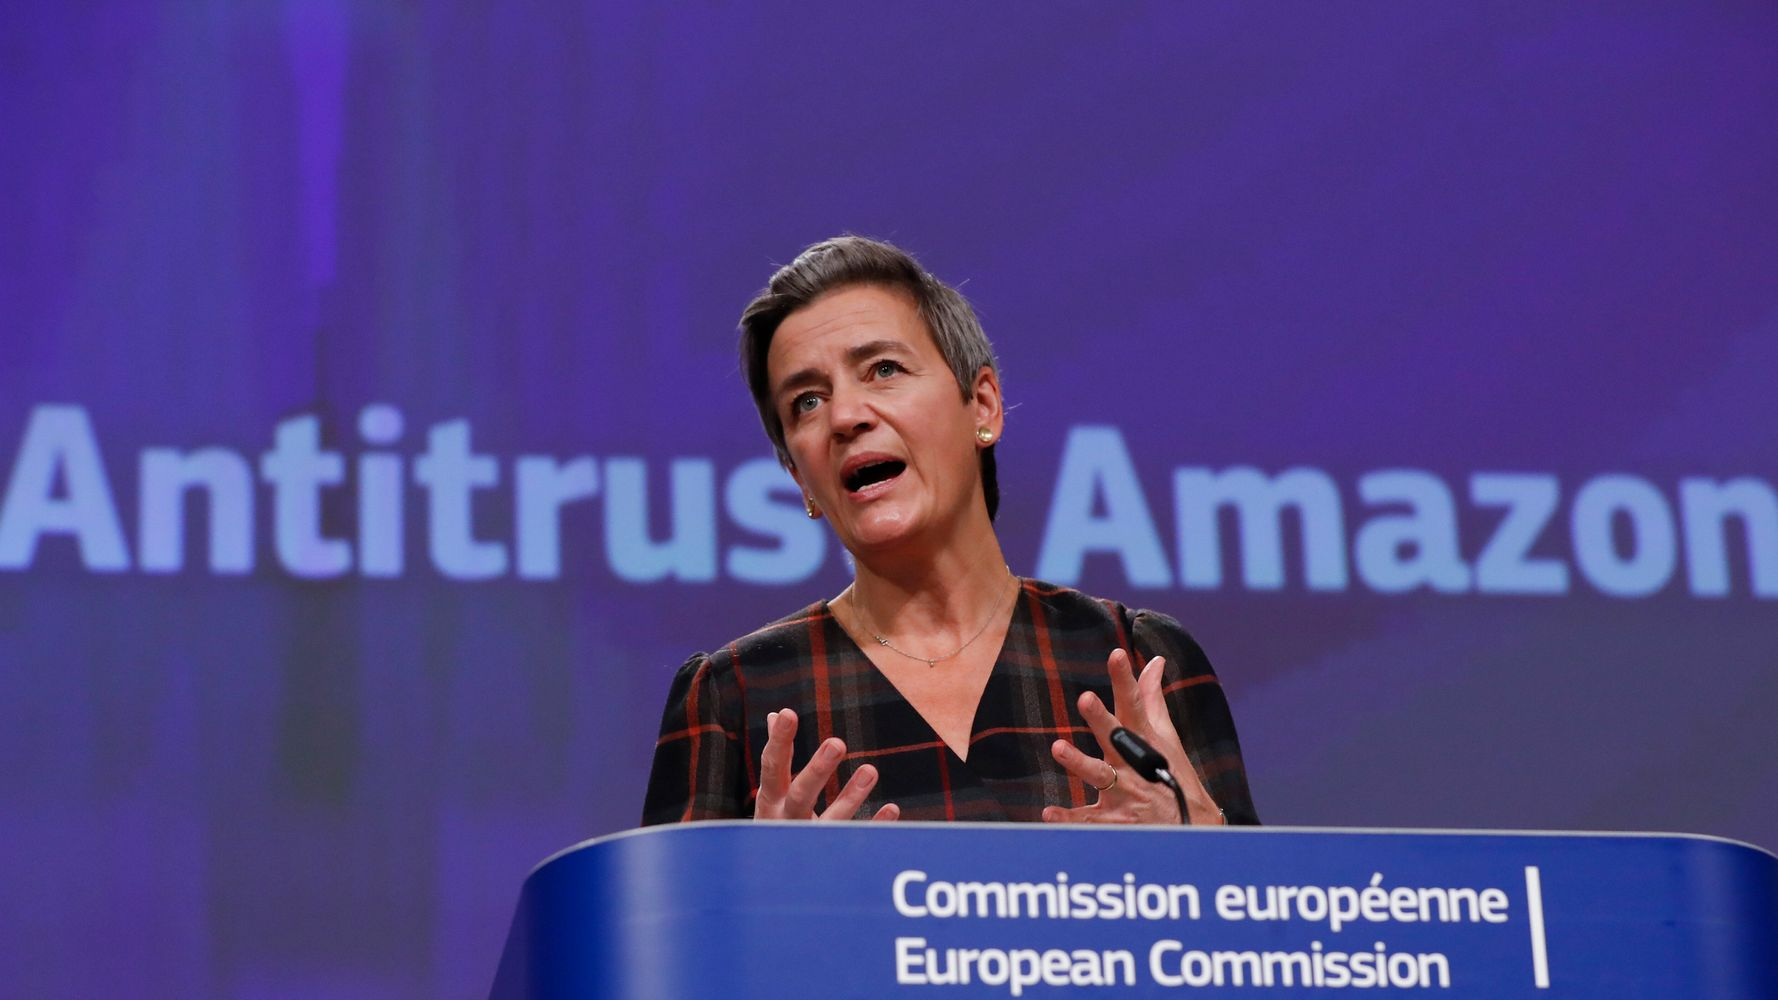 European Union Files Antitrust Charges Against Amazon